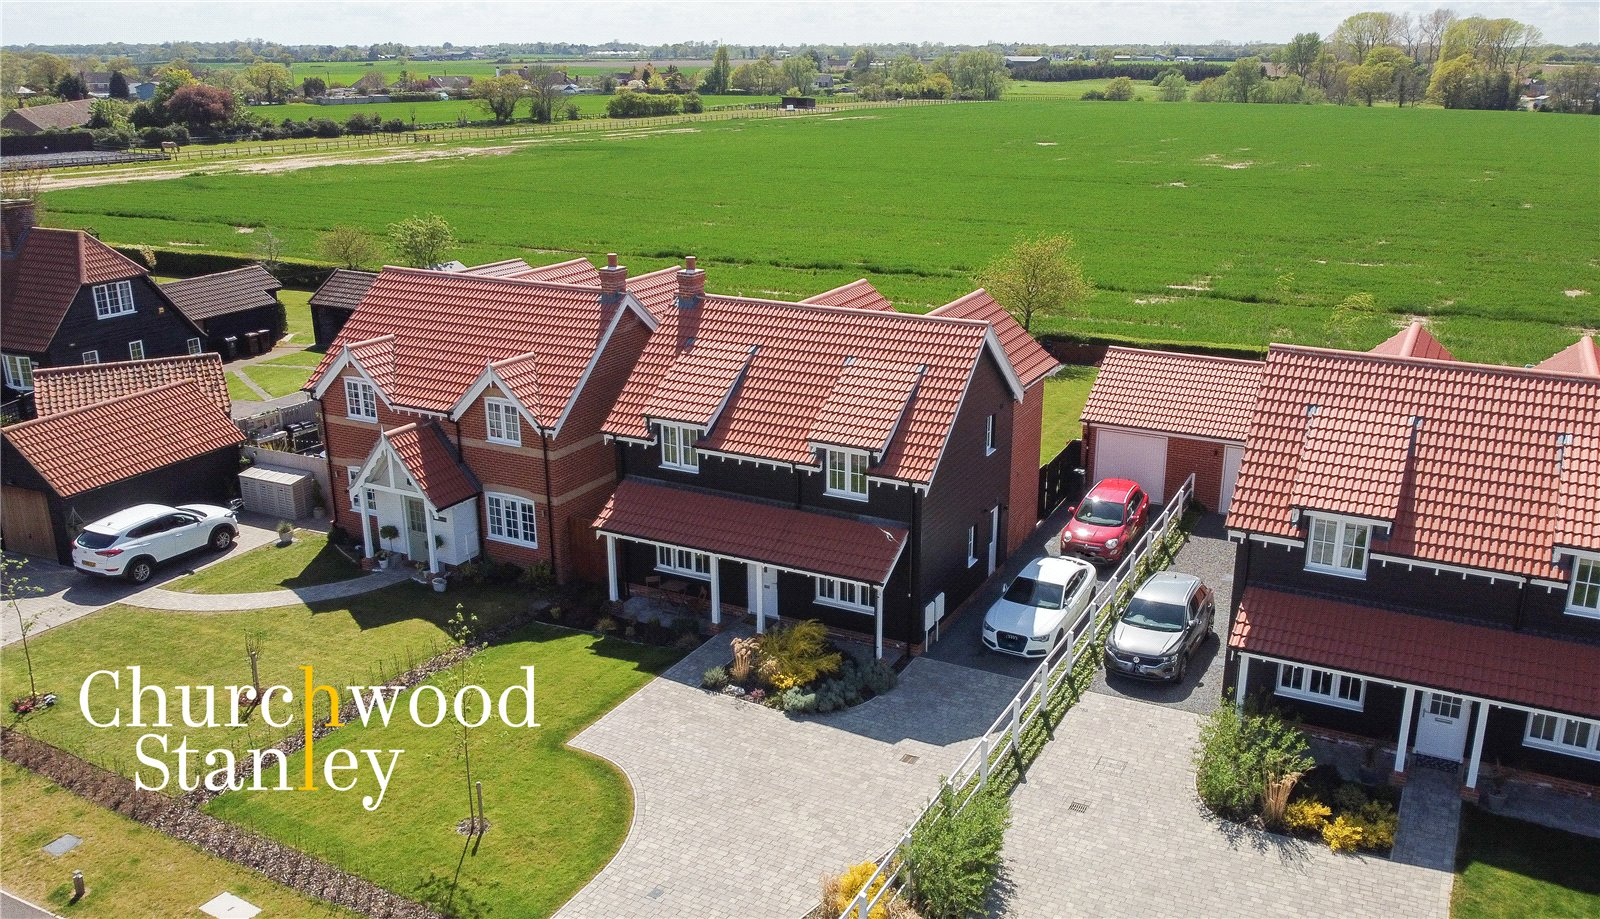 4 bed house for sale in Sturrick Lane, Great Bentley, Colchester, CO7